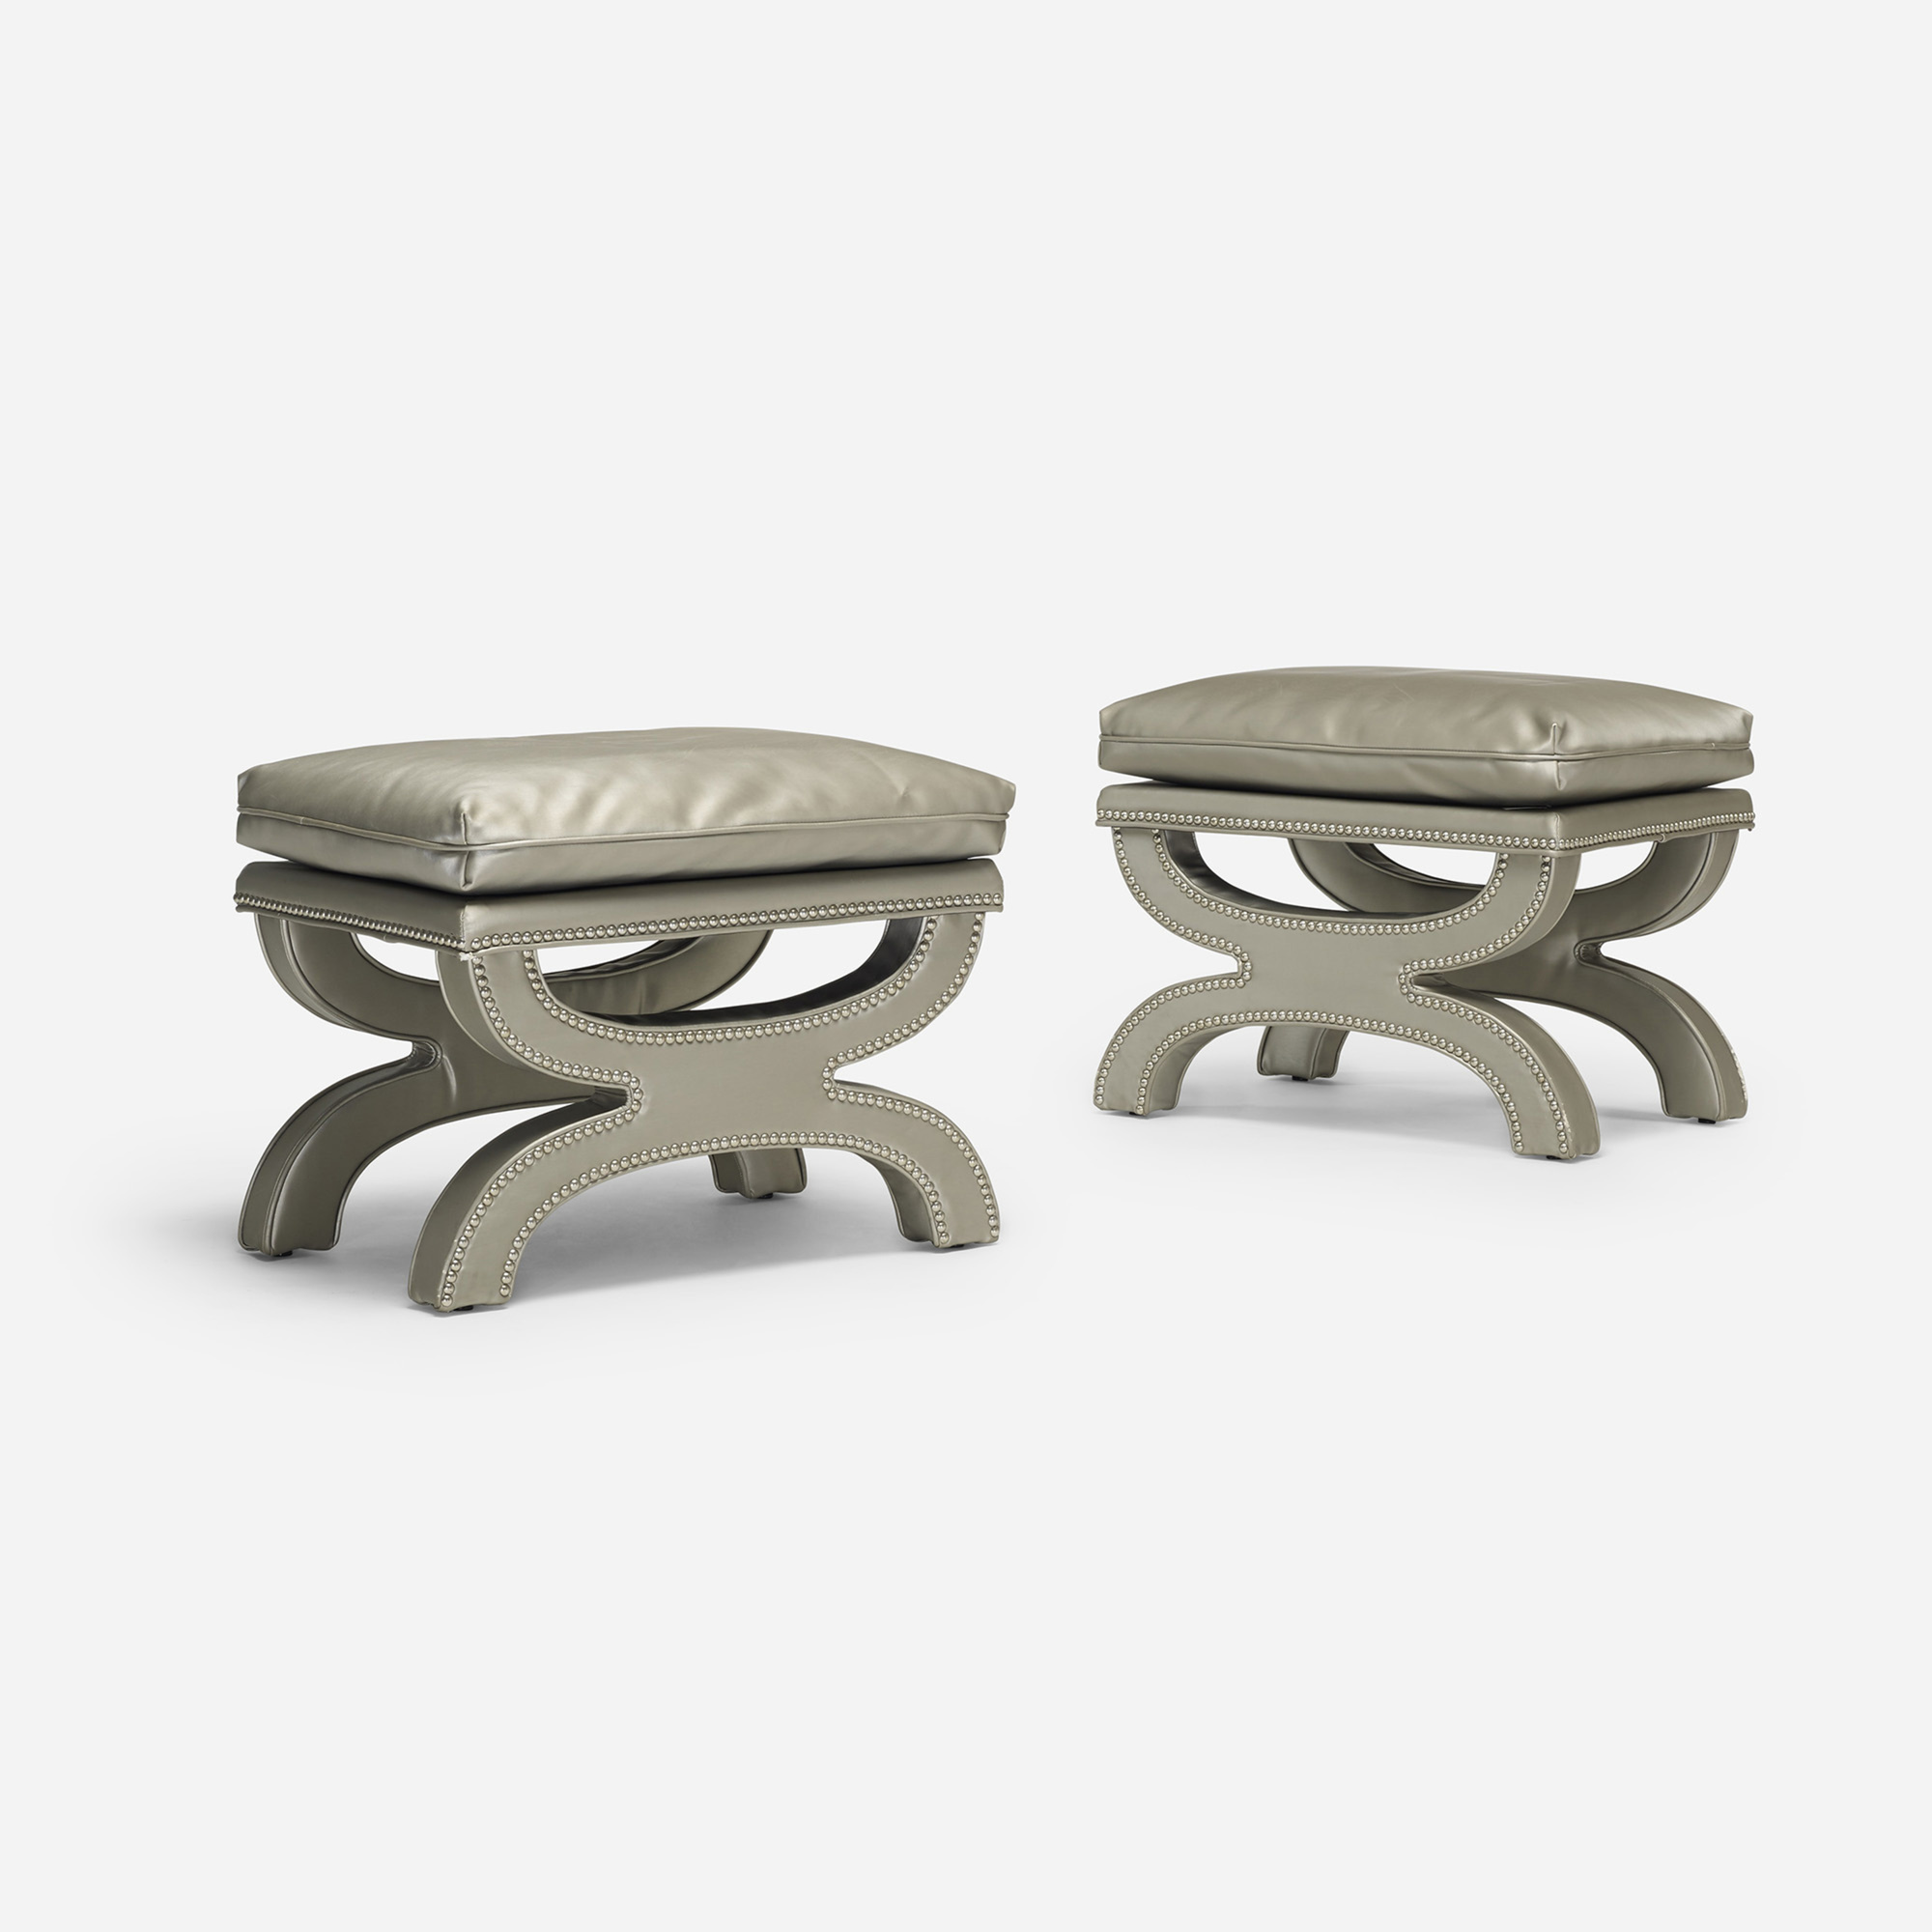 218: Contemporary / stools, pair (2 of 4)